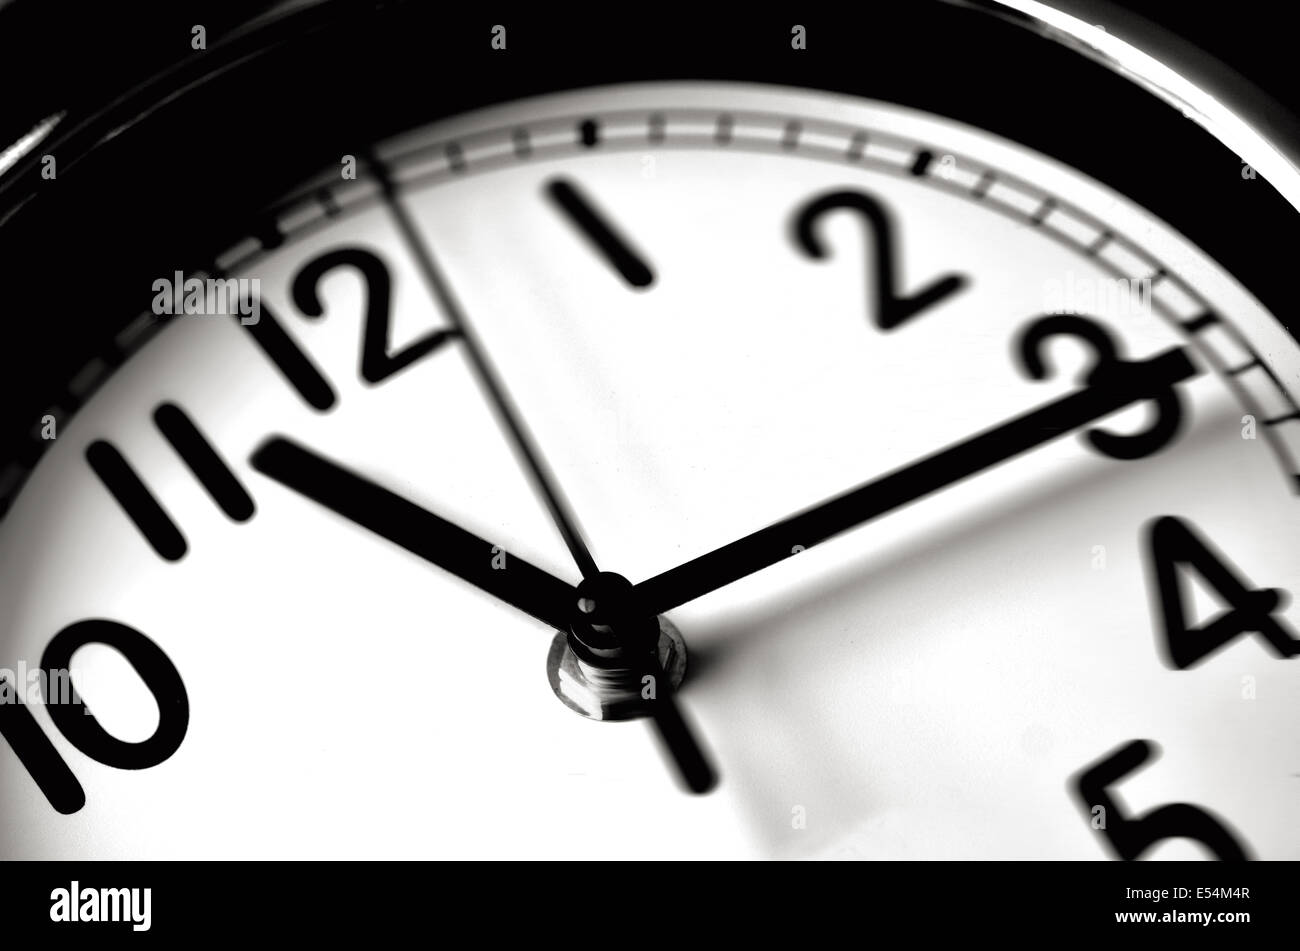 Time passing over the face of home office Wall Clock. Concept photo of time, timing ,business, busy,deadline. - Stock Image